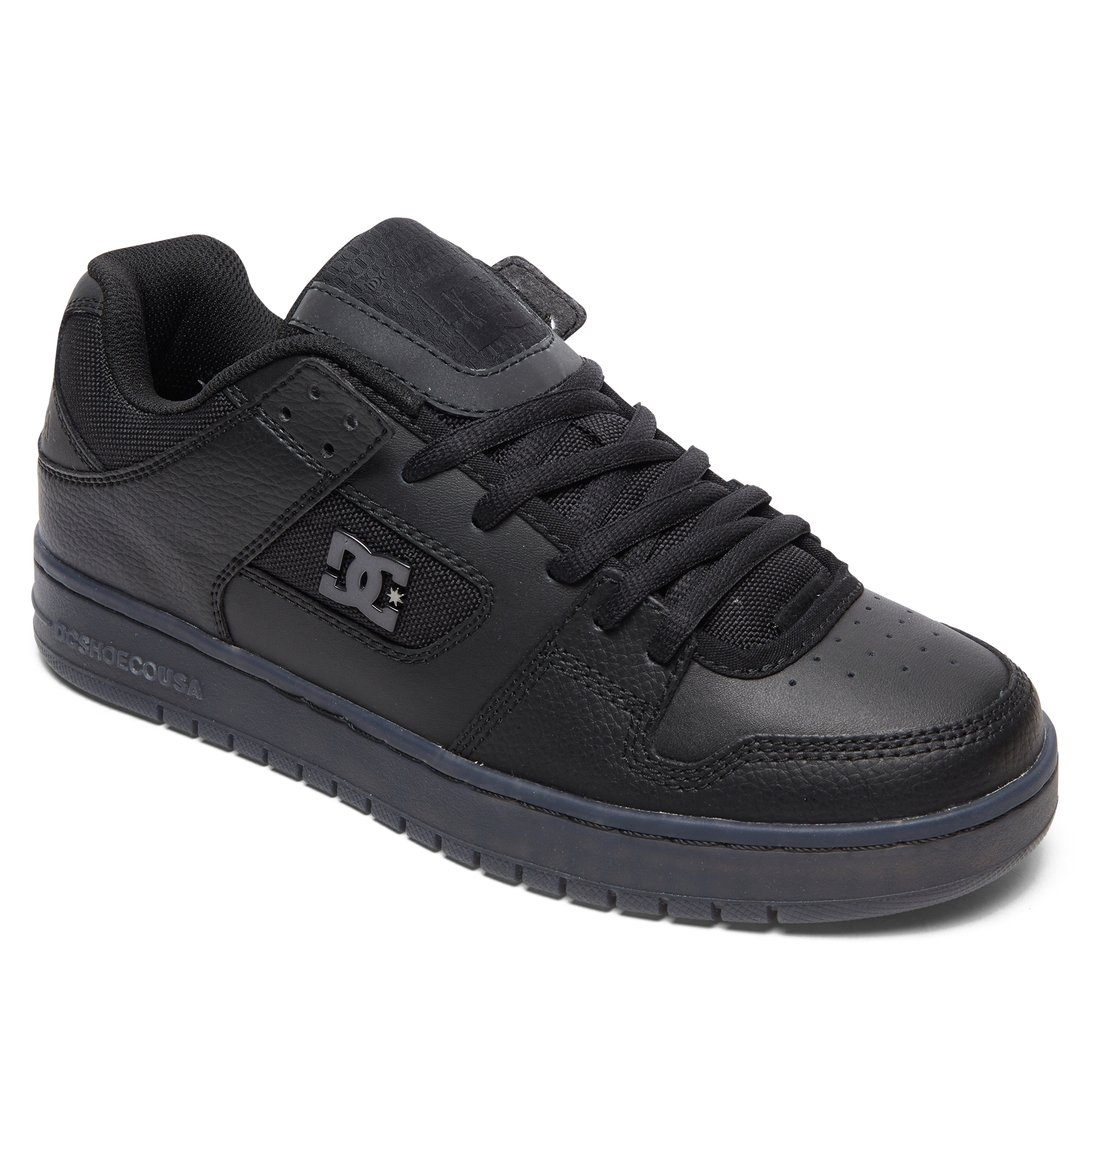 DC Shoes™ Manteca SE Shoes for Men ADYS100314  8966cbf19f647